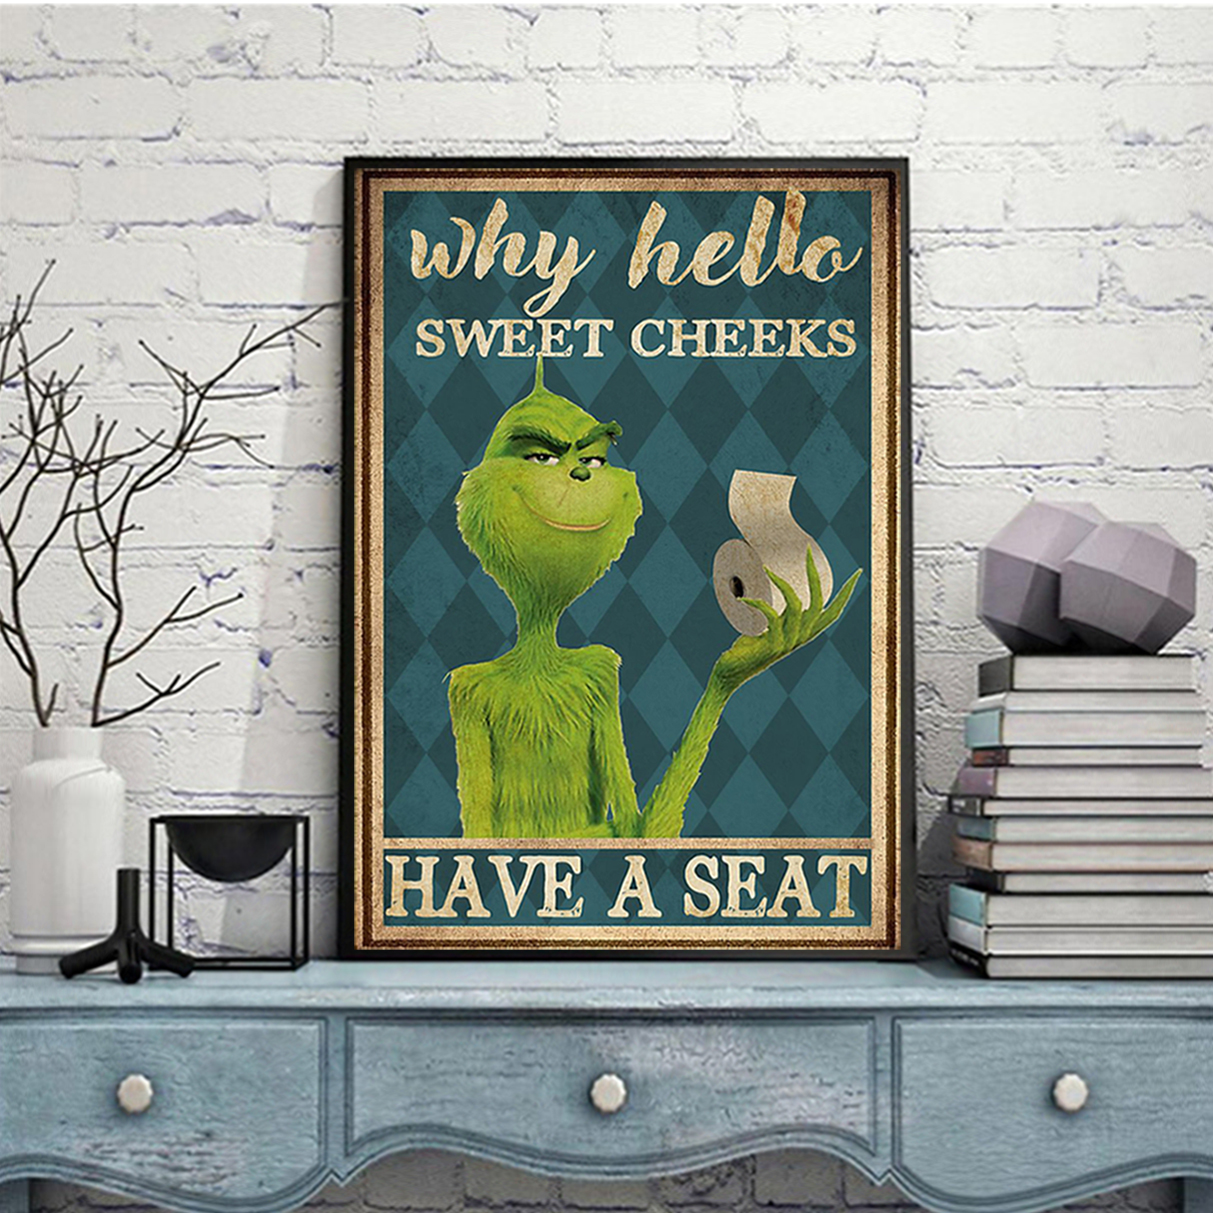 Grinch why hello sweet cheeks have a seat poster A3